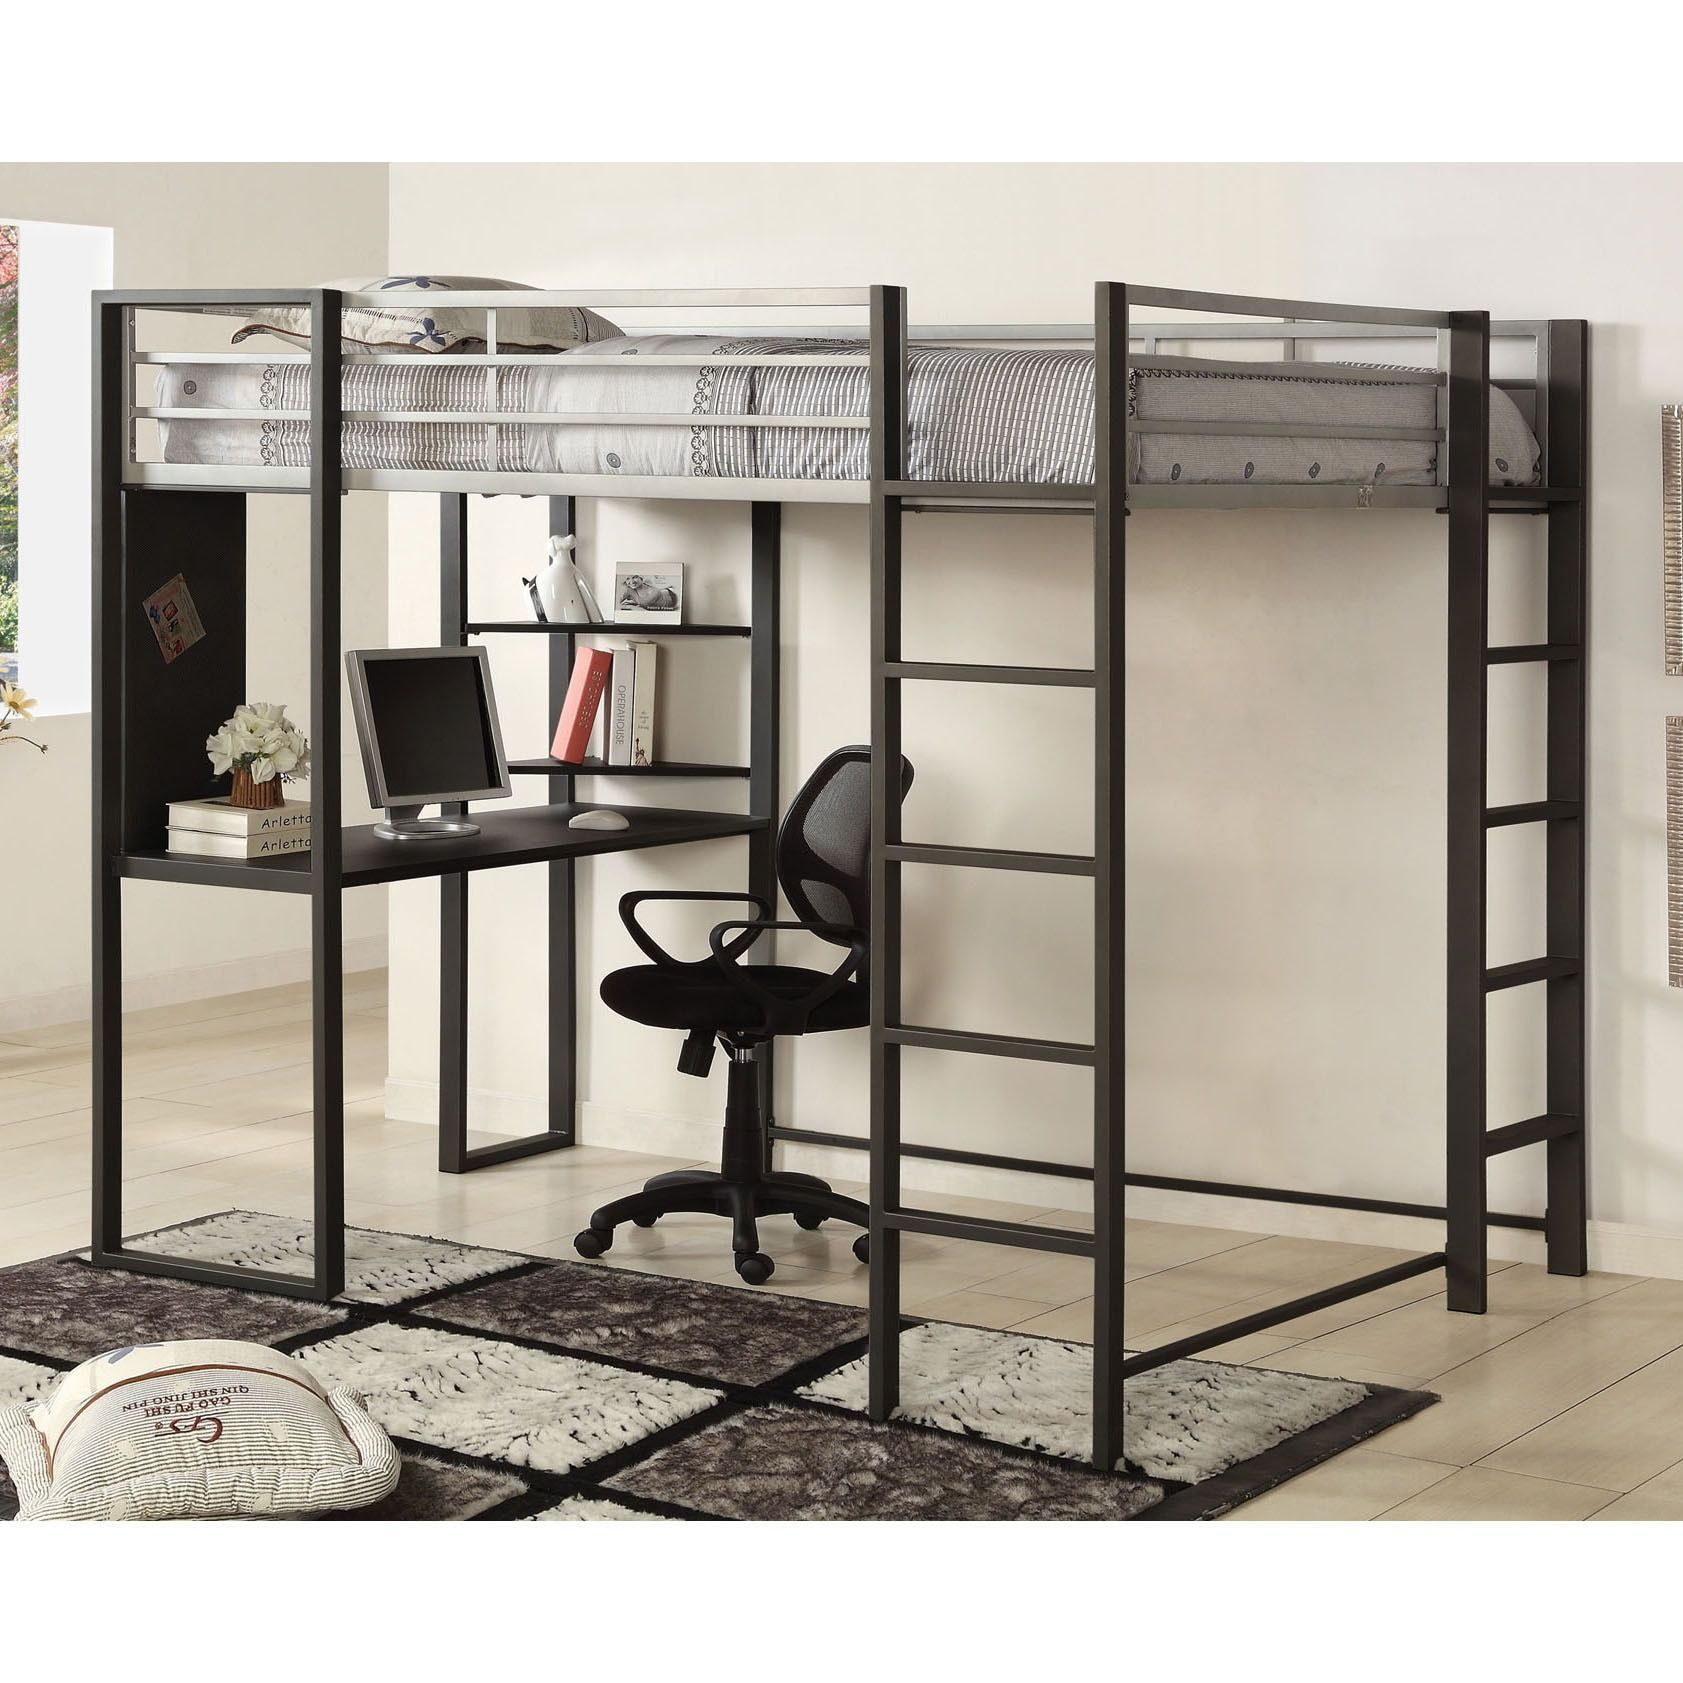 Metal loft bed ideas  Furniture of America Claremonte Silver and Grey Metal Loft Bed with